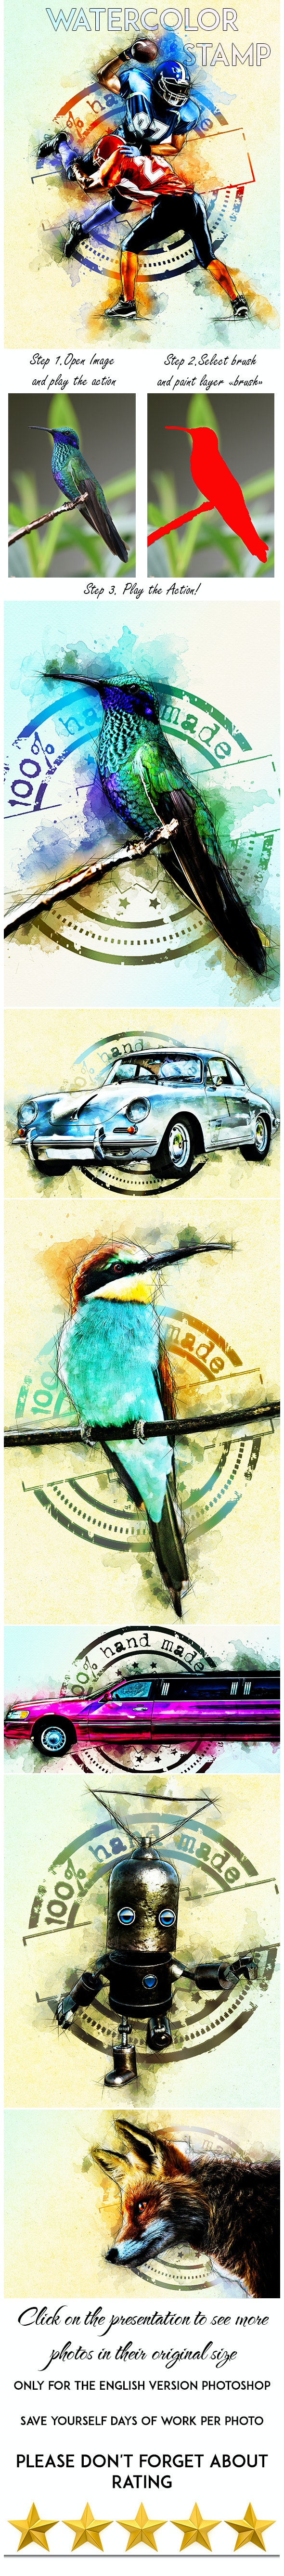 Watercolor Stamp Photoshop Action - Photo Effects Actions